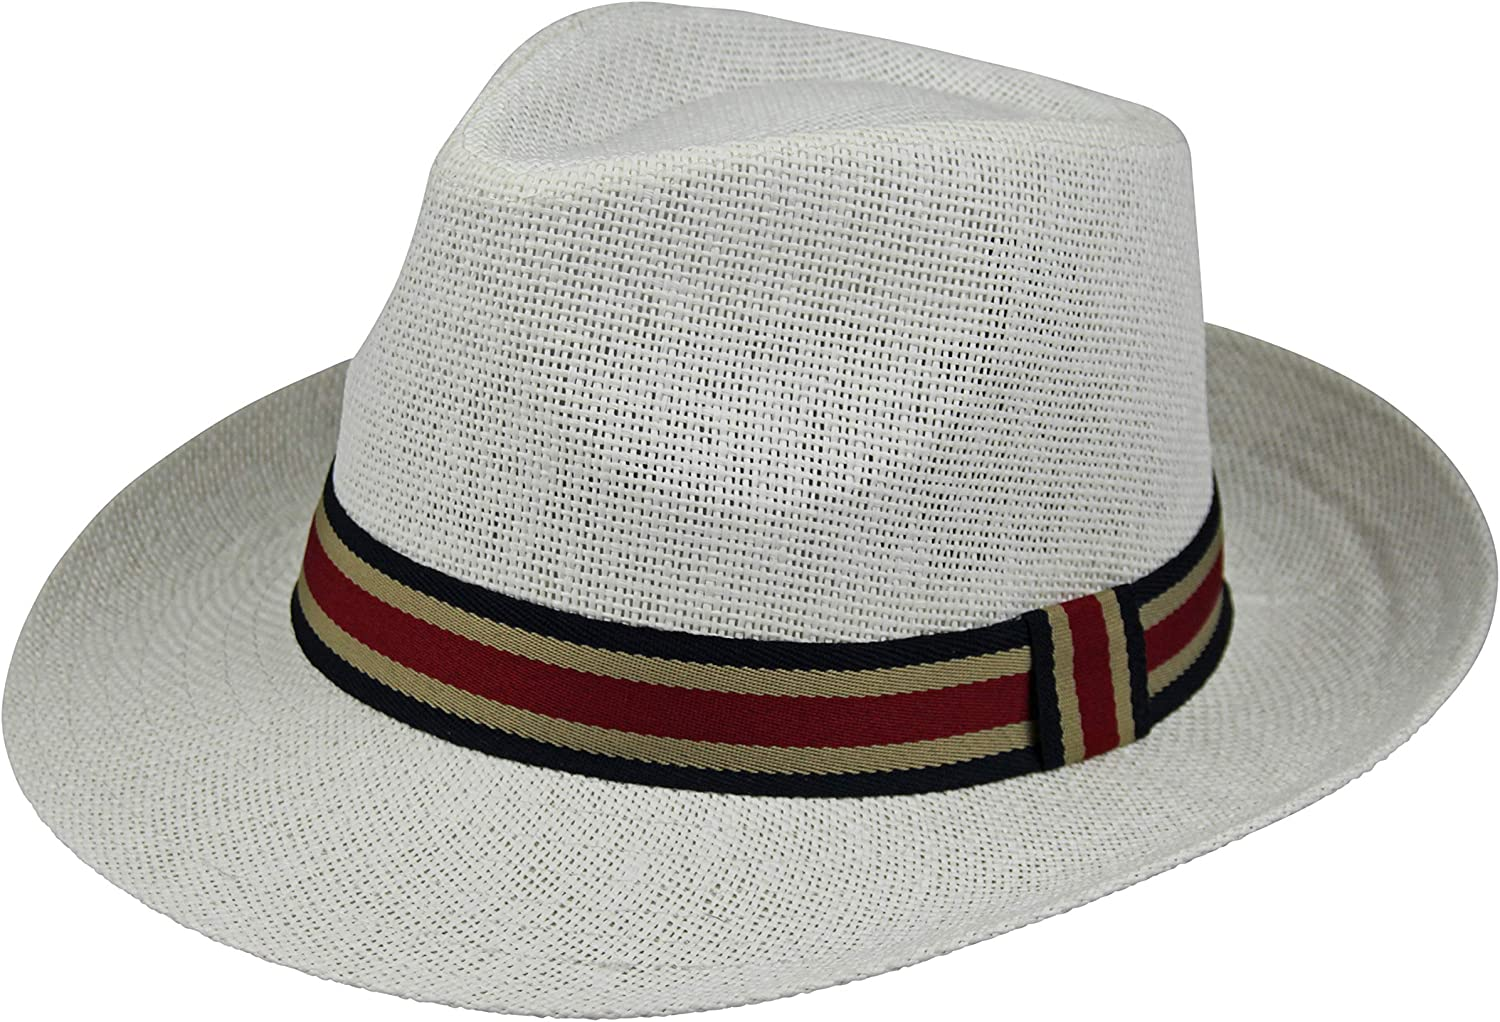 By Neki Mens Trilby Hat with Contrasting Striped Hat Band